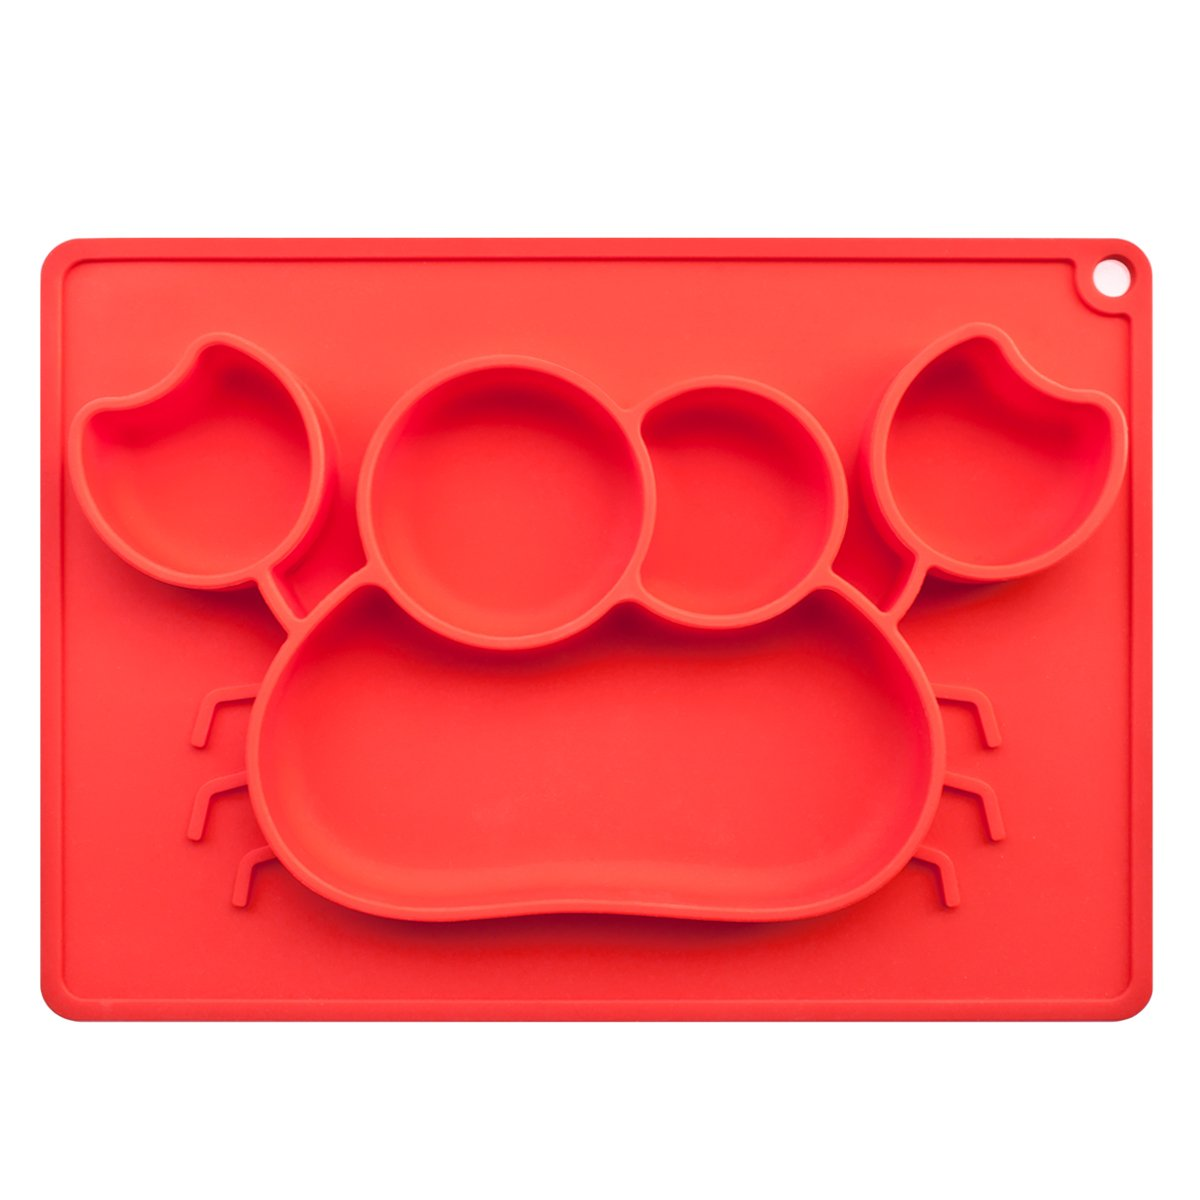 Baby Feeding Mat, BliGli Toddlers Silicone Placemat, Strong Suction Non-Slip Baby Plates for Babies Toddlers and Kids, Dishwasher/Microwave Oven Safe, Fits Most High Chair Trays (Red Crab)